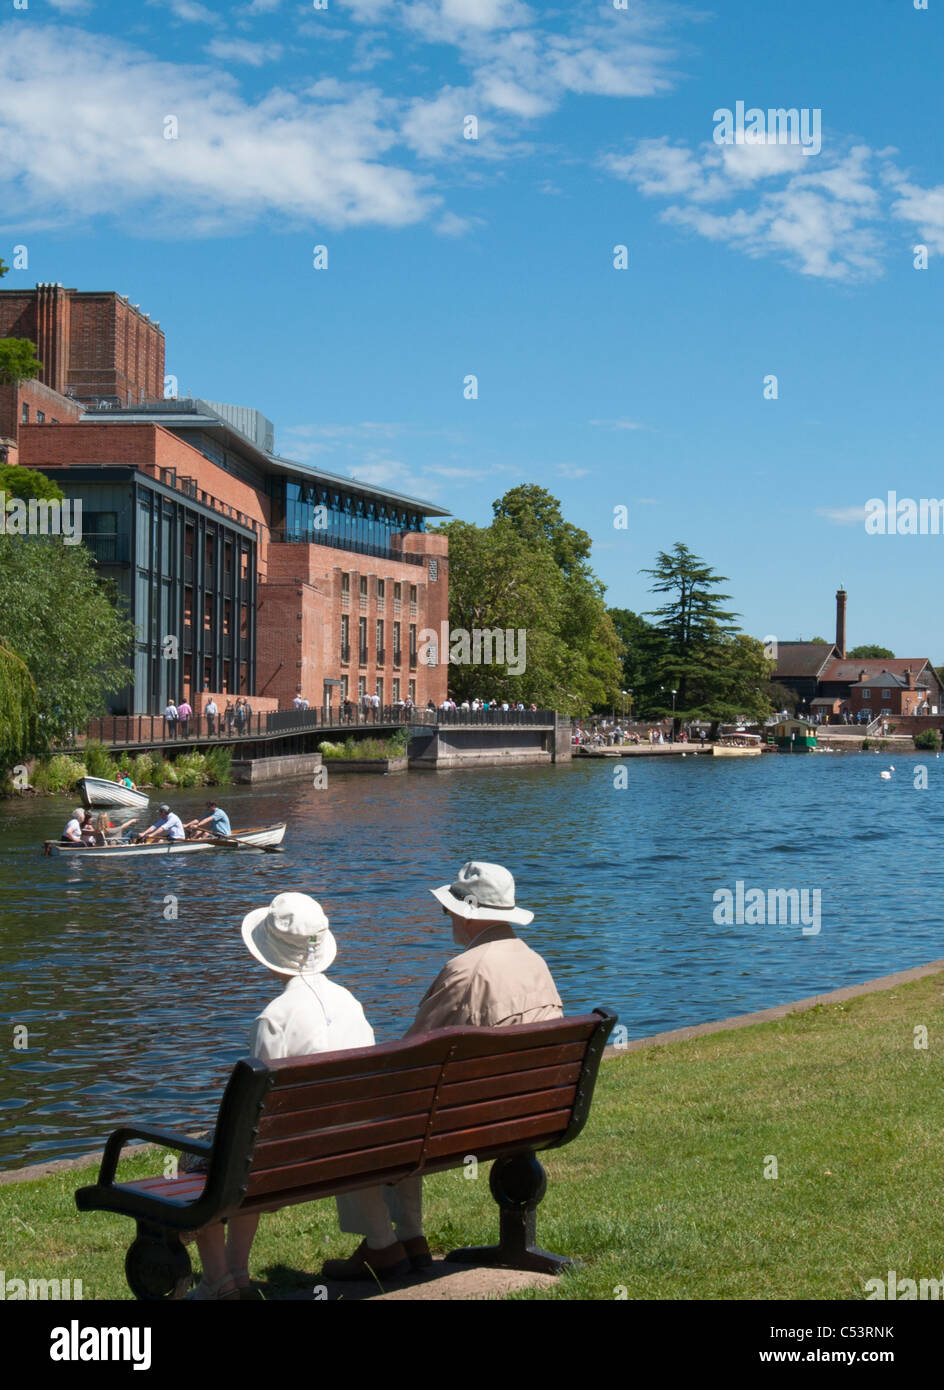 A quaint English scene with the Swan theatre, over the river Avon, Stratford upon Avon, UK. 2011. - Stock Image